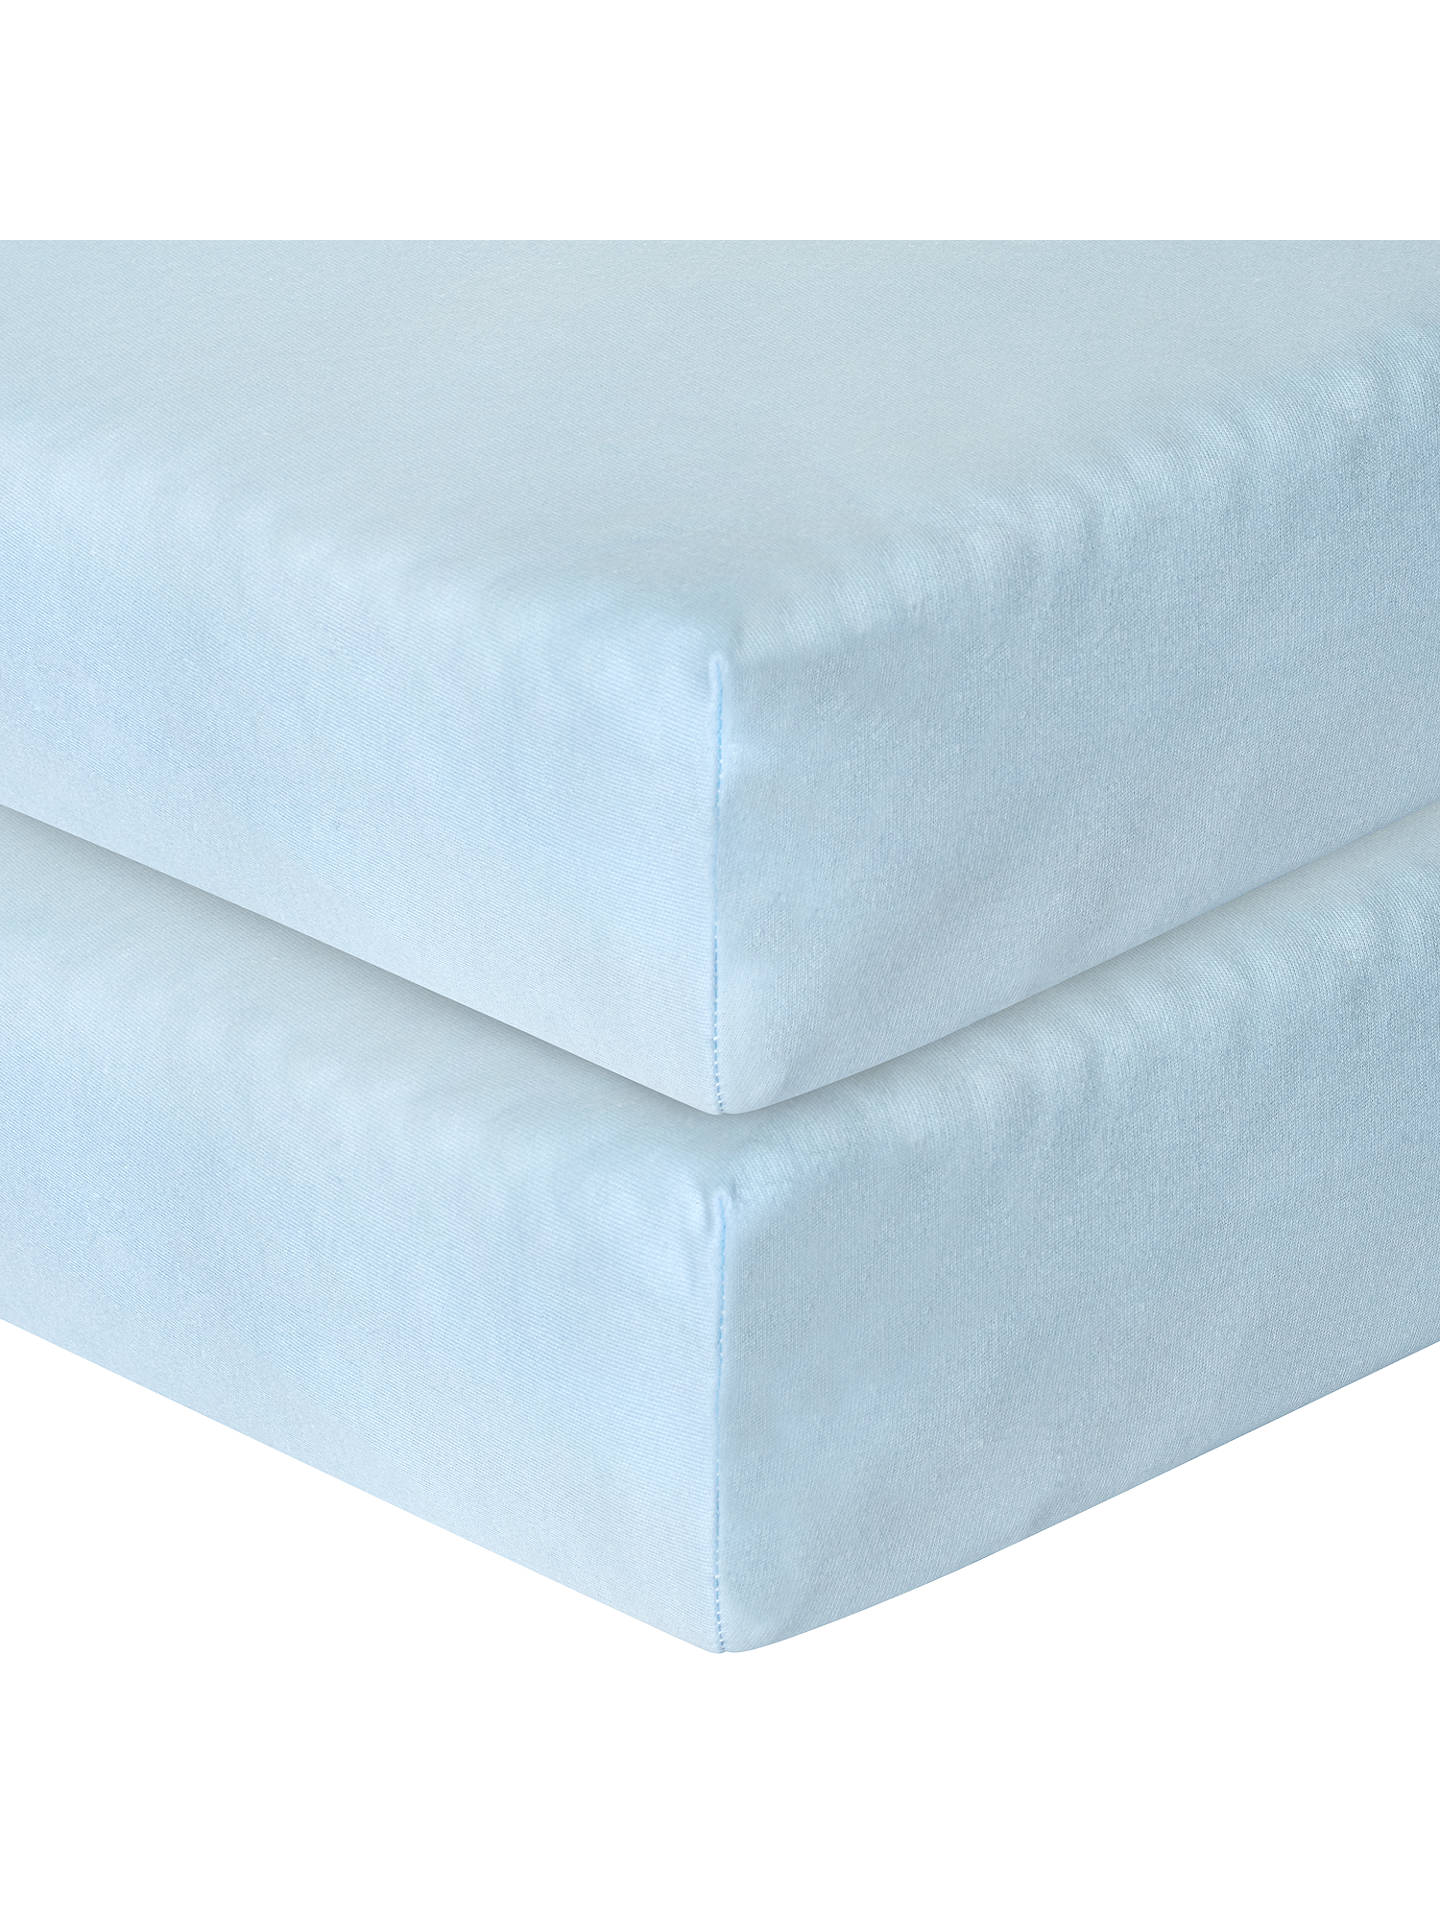 NEW Light Blue Knit Fitted Crib Sheet Toddler Bed Sheet  Please Choose Pattern